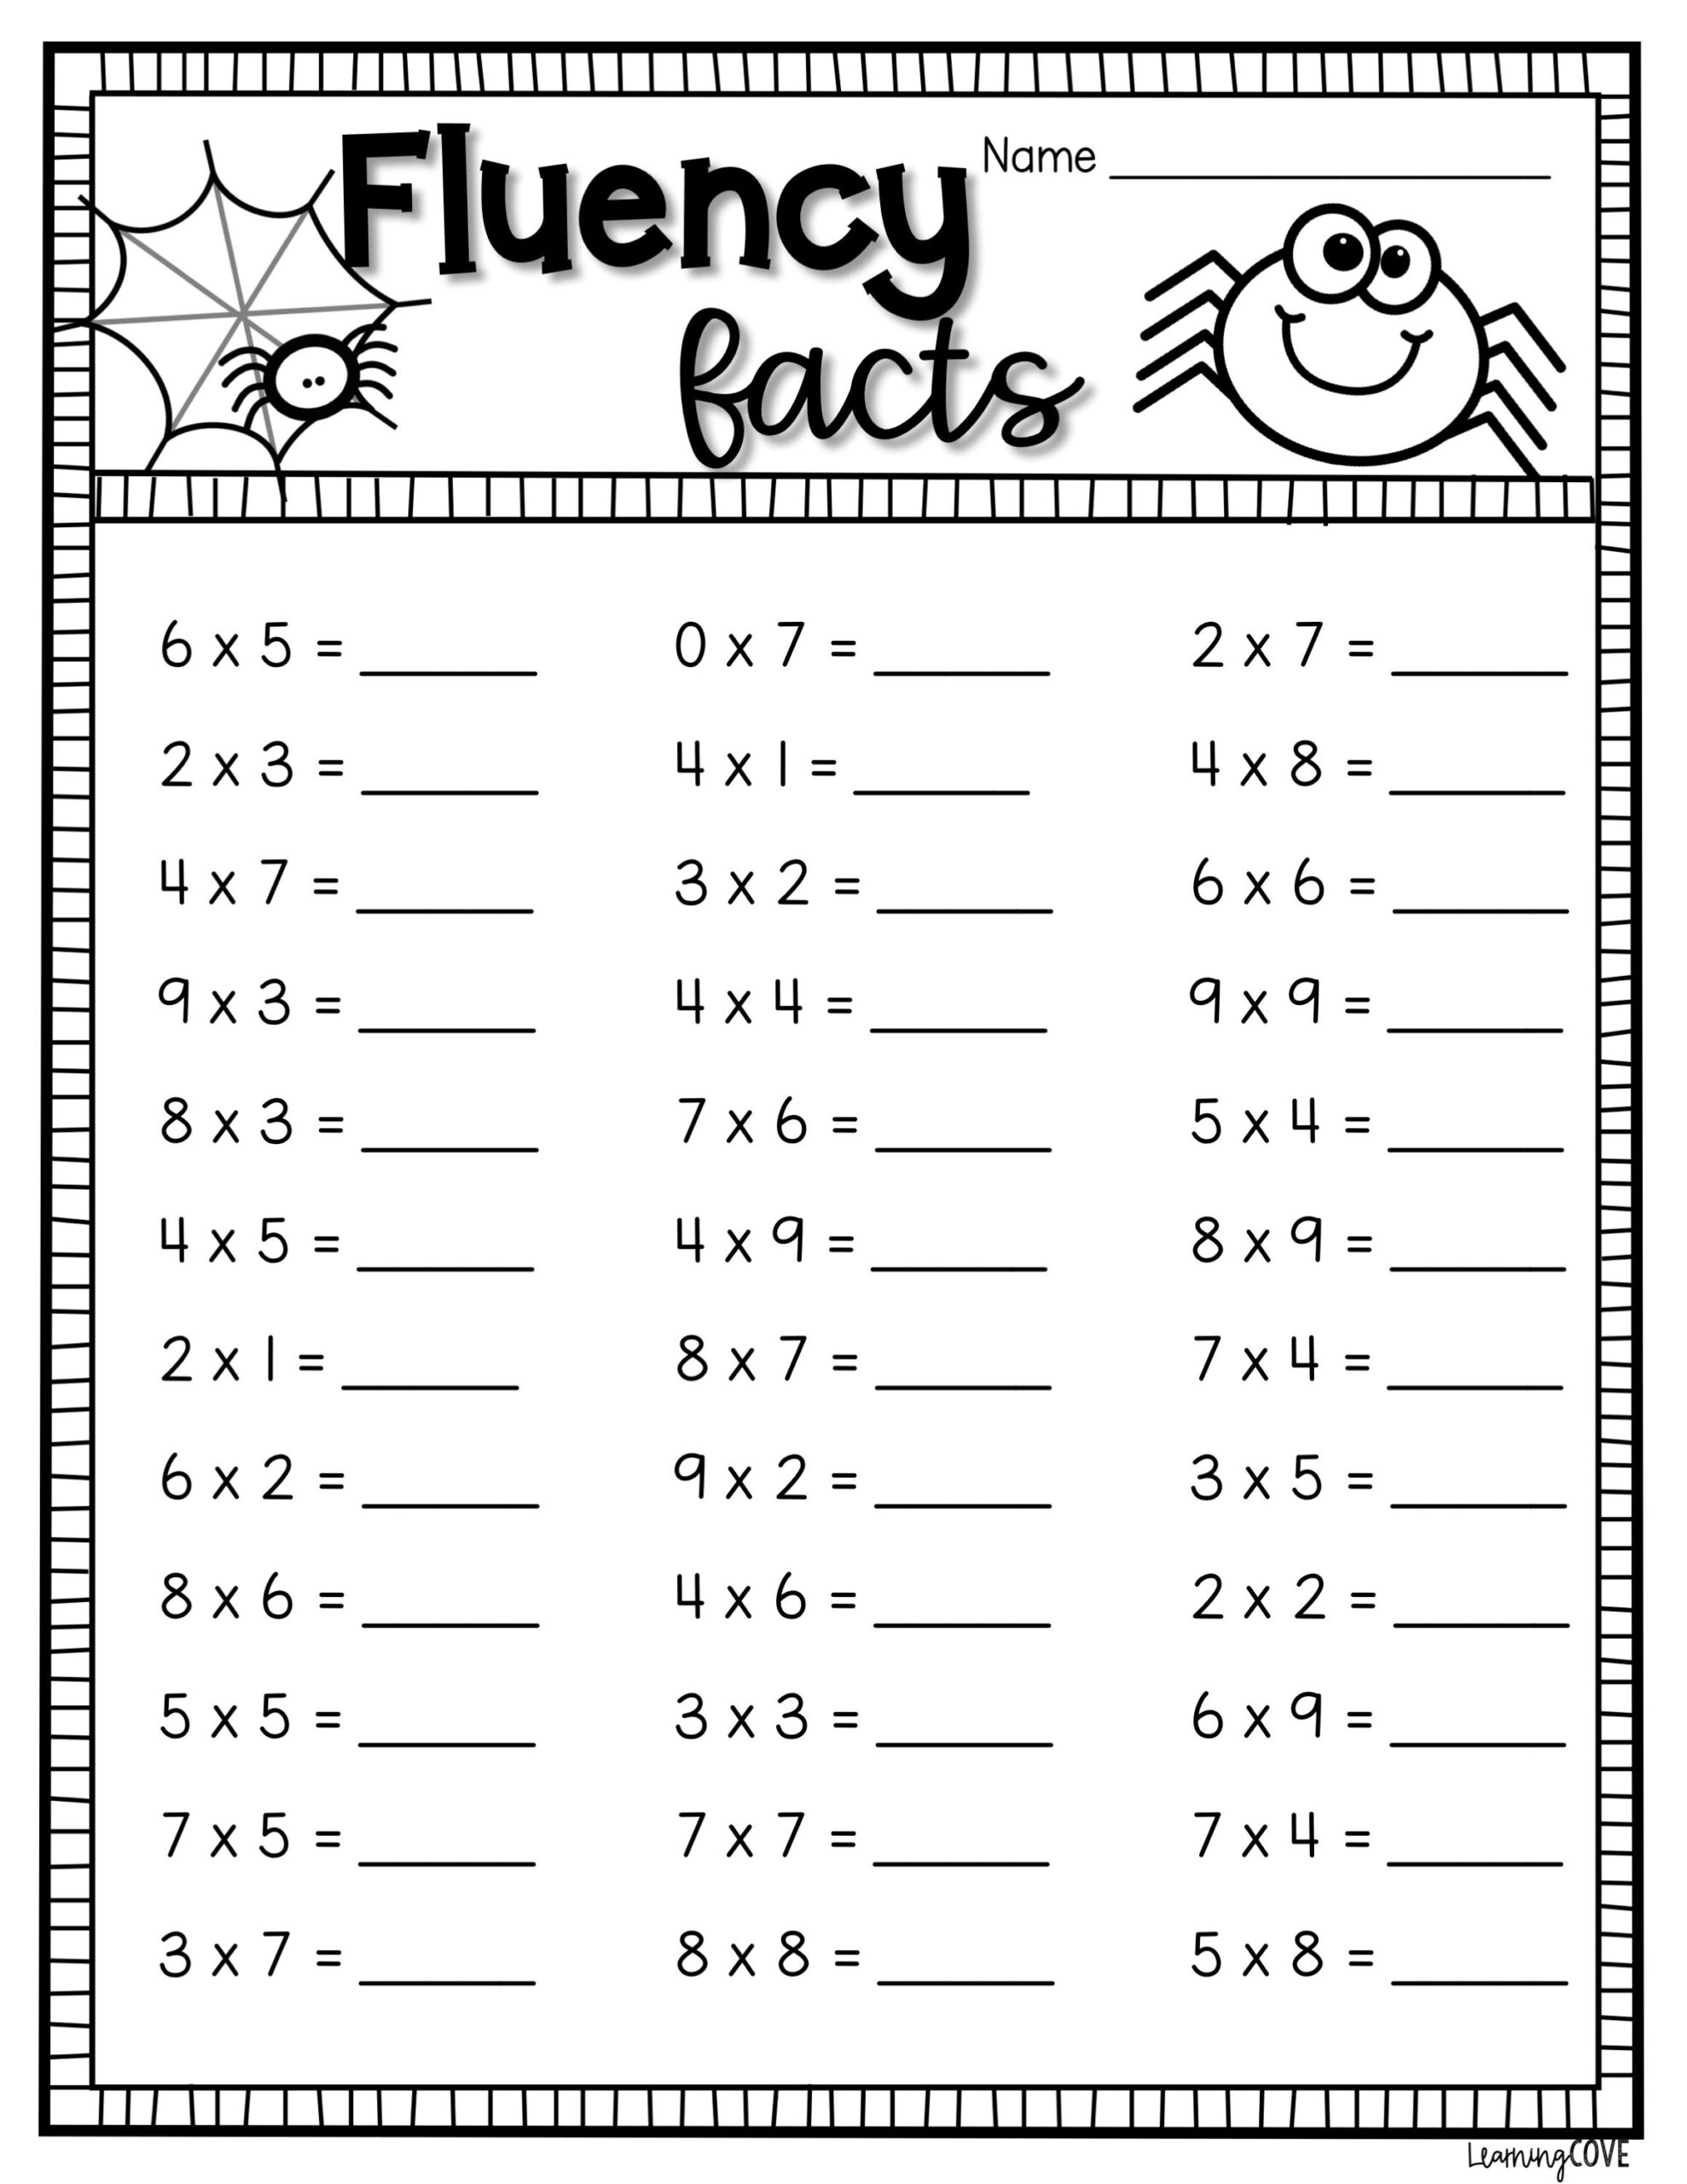 hight resolution of 1st Grade Halloween Math Worksheets   Printable Worksheets and Activities  for Teachers